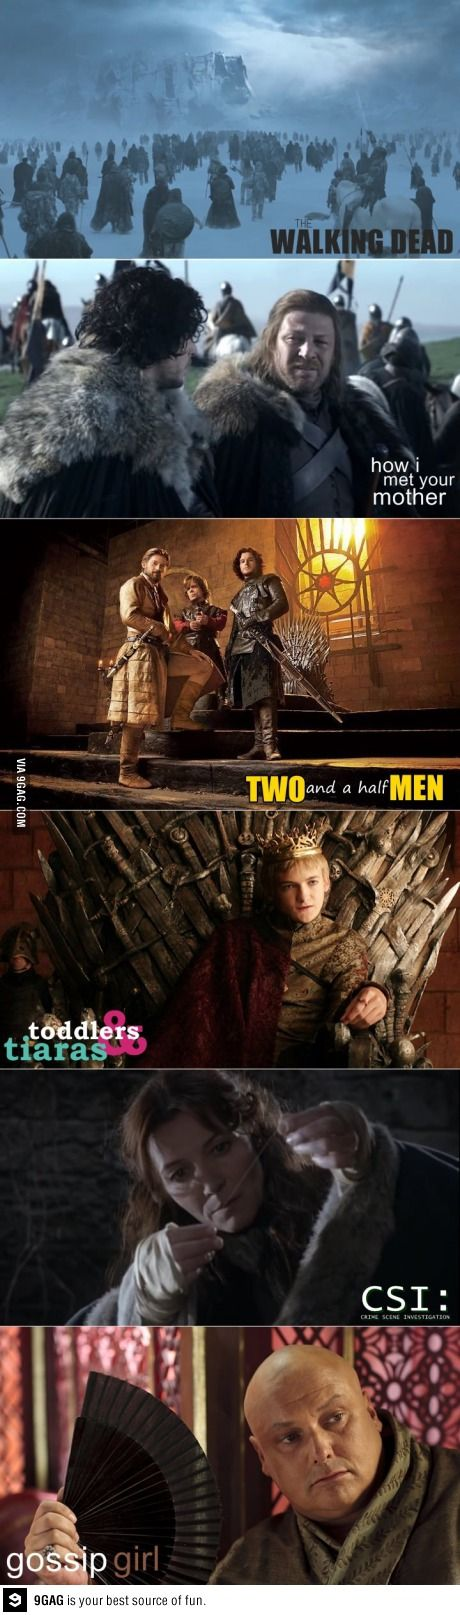 ok, this made me laugh. Perfect! Game of Thrones. I loved Toddlers and Tiaras because I HATE Joffrey!!!